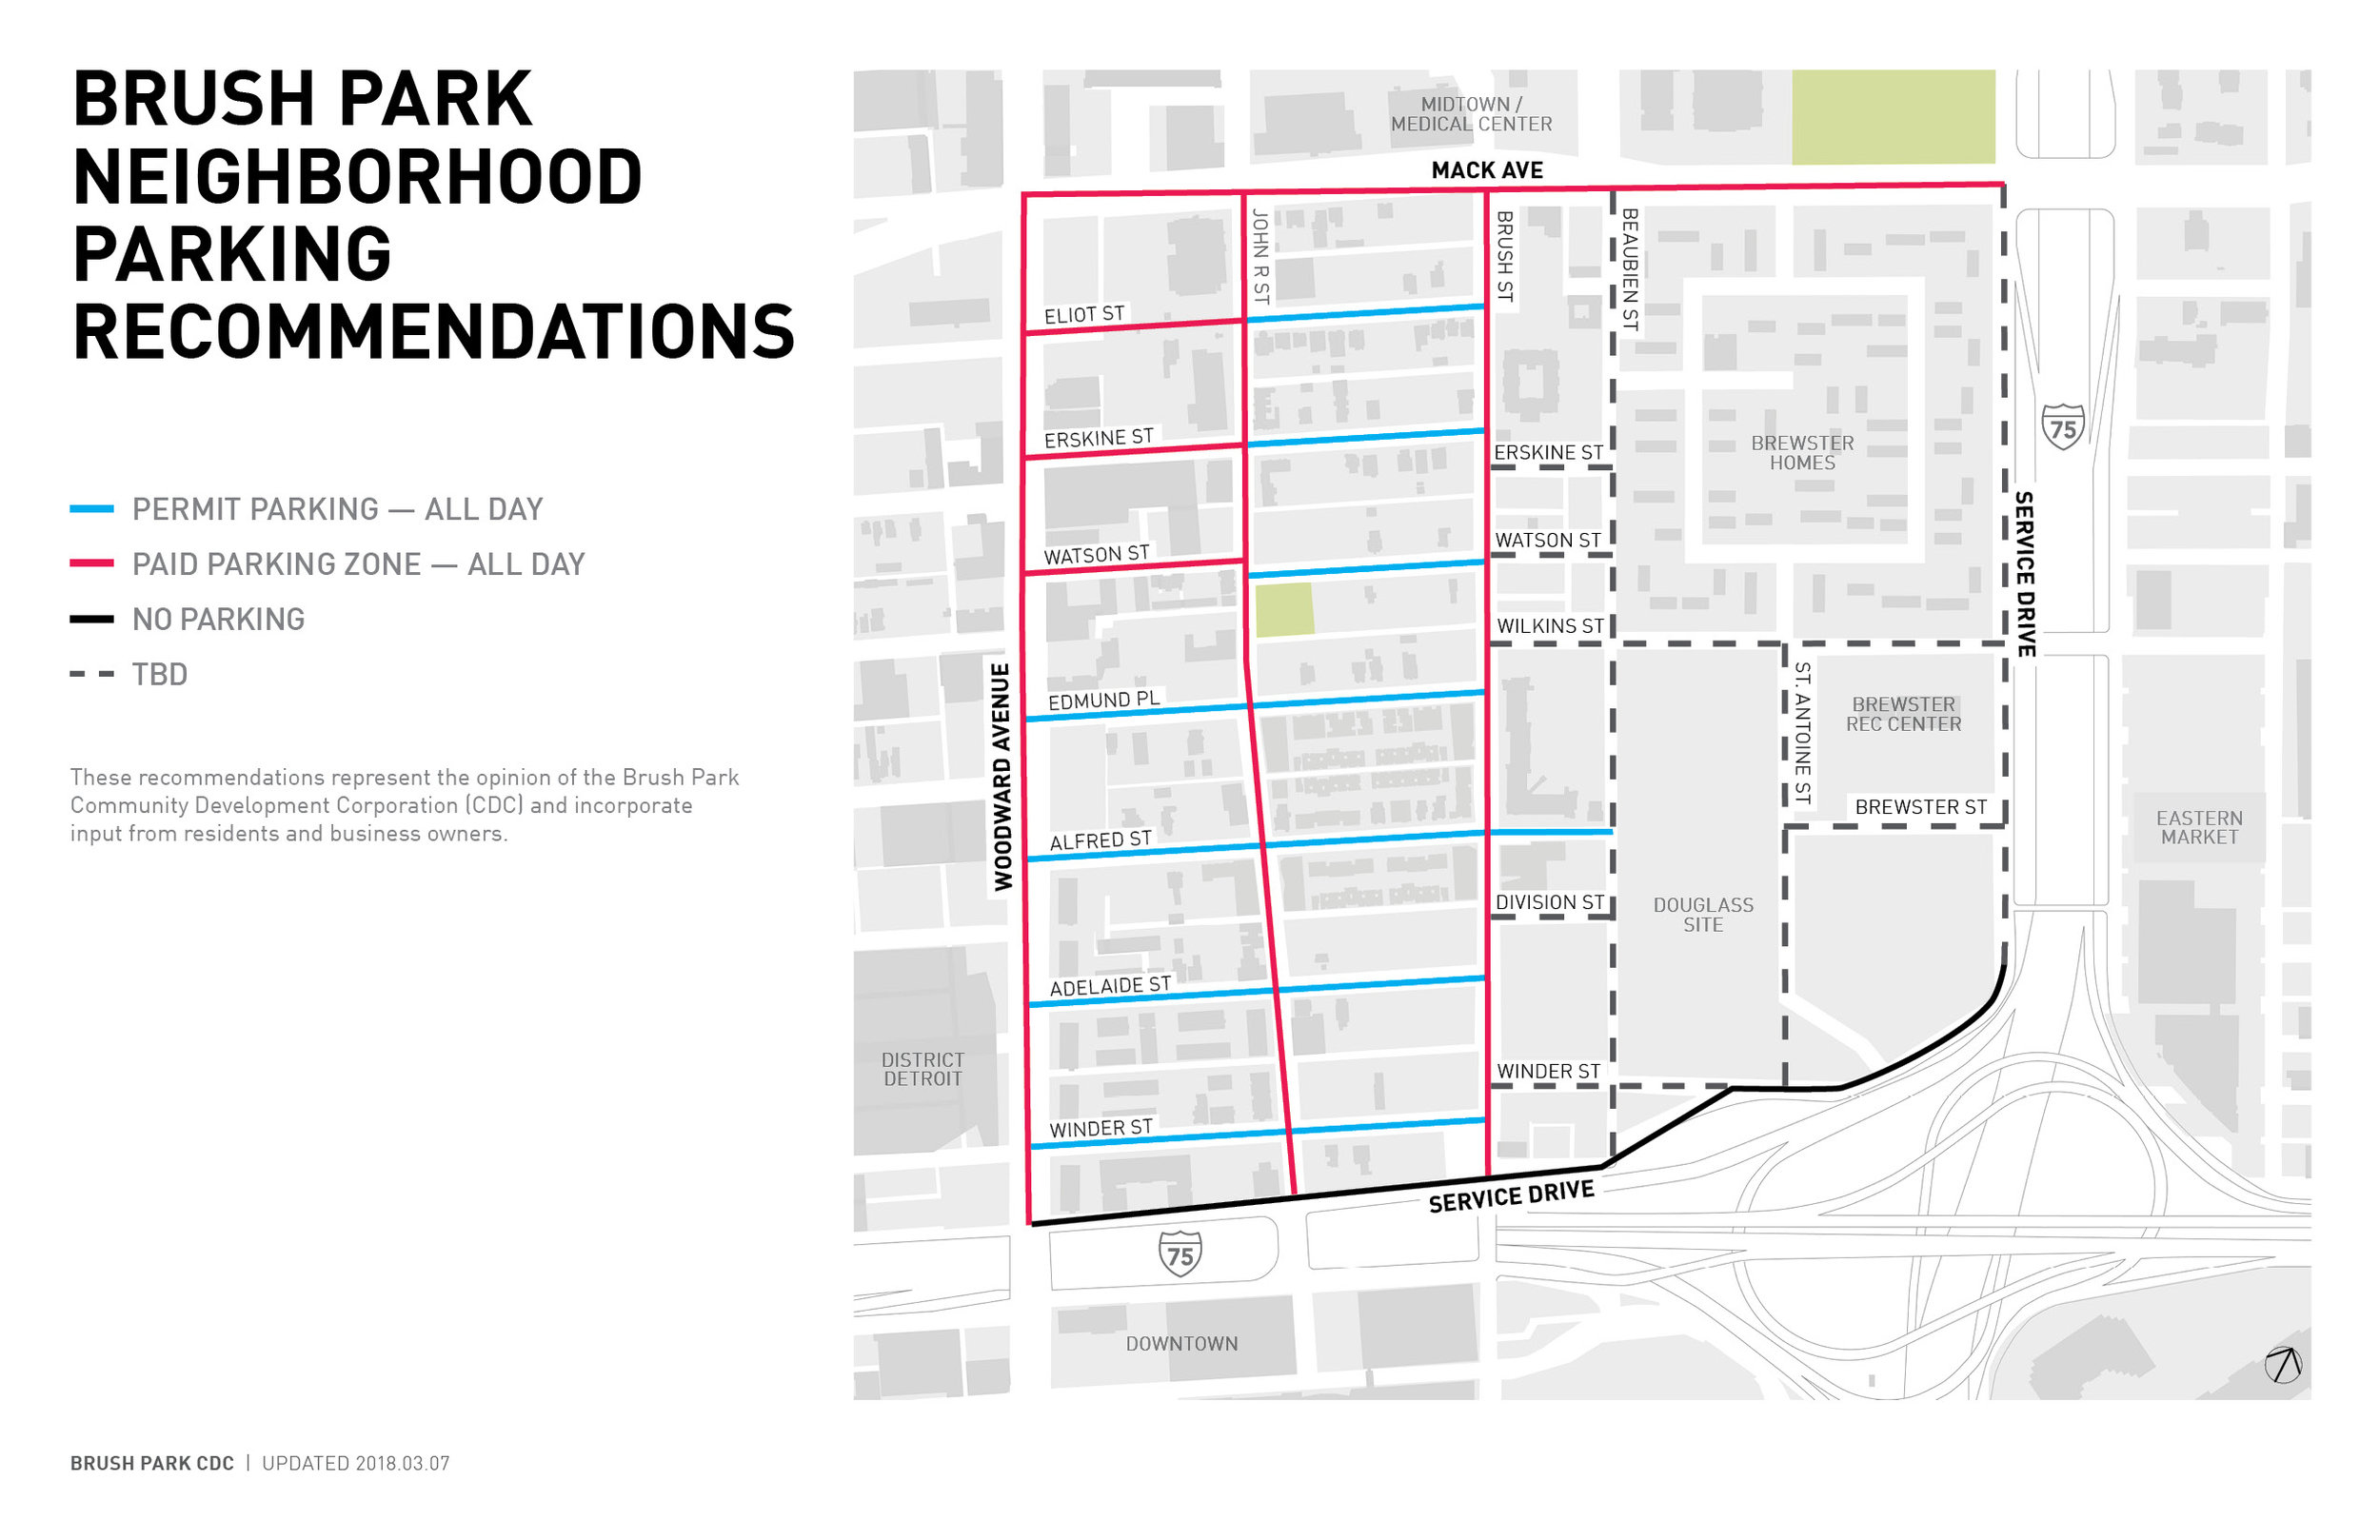 2019_0606 Brush Park CDC_Neighborhood Parking Recommendations (1).jpg